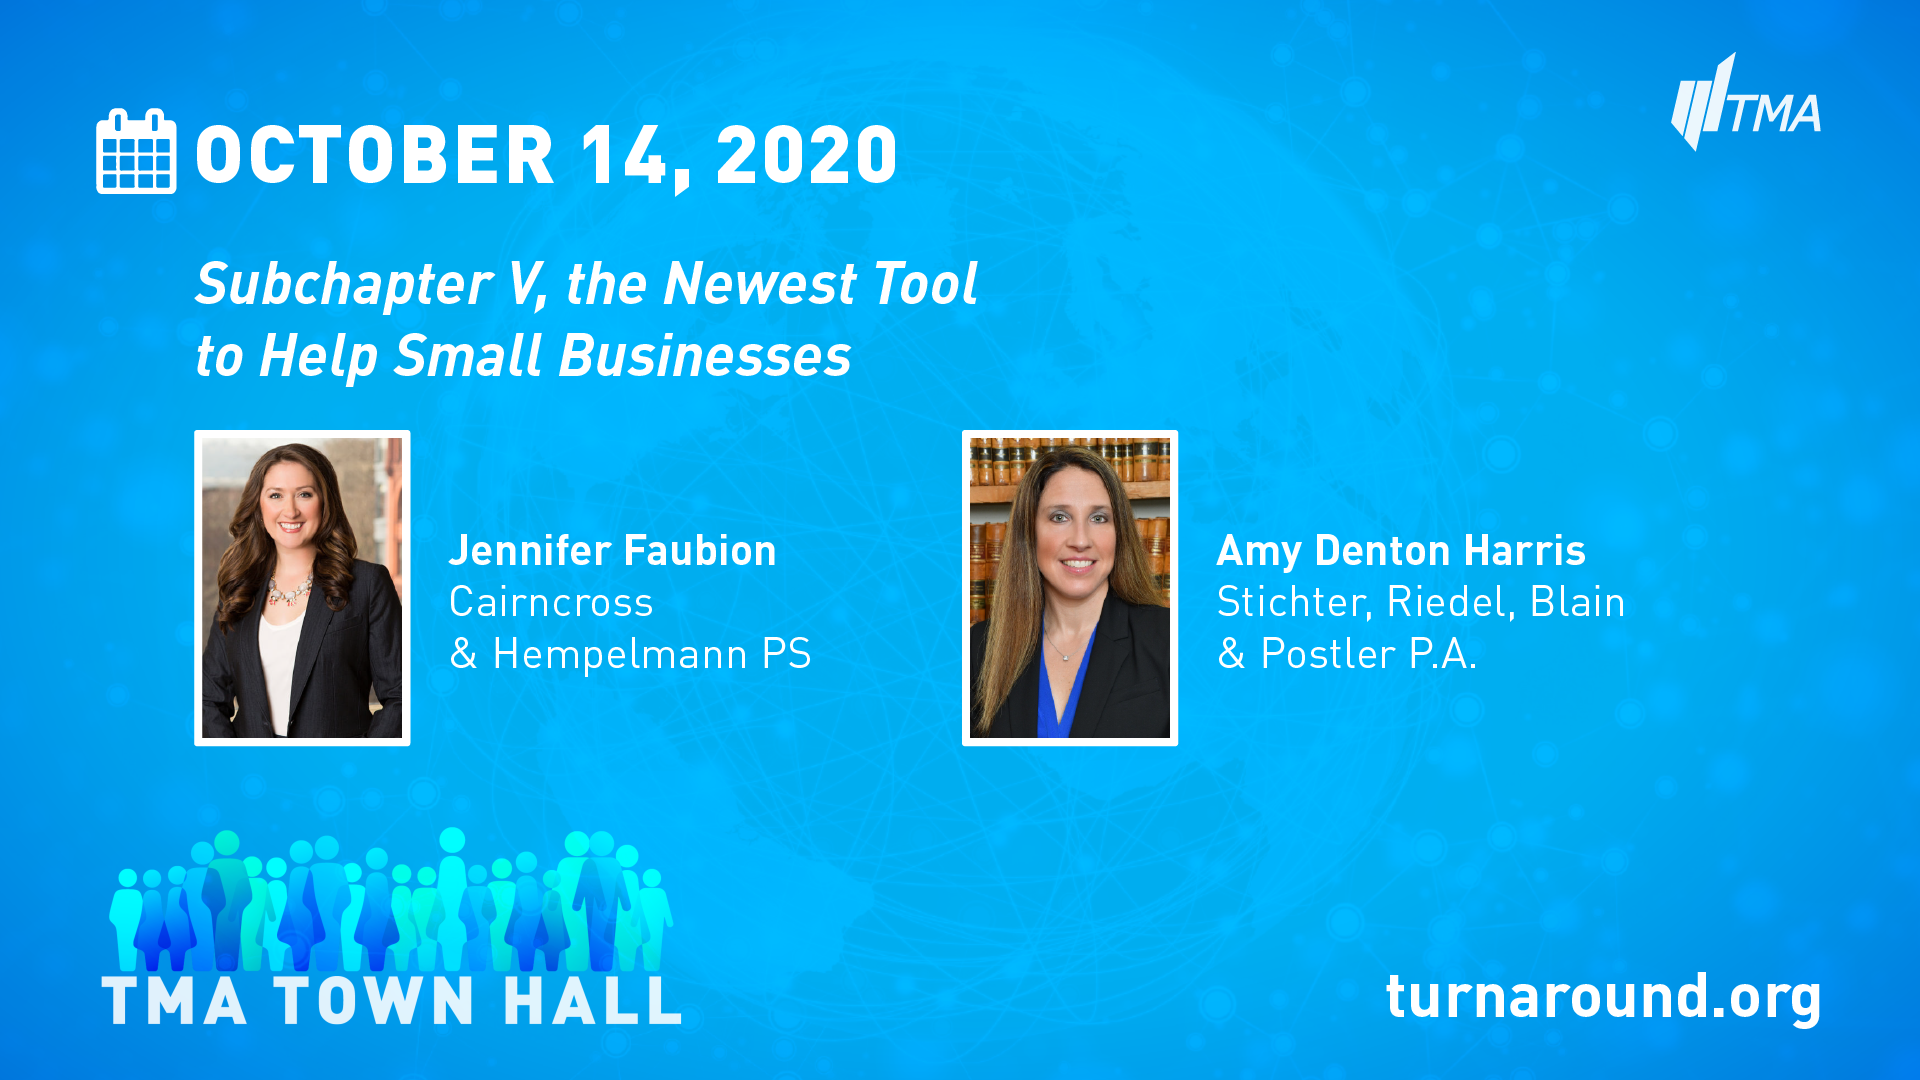 TMA Town Hall for October 14, 2020